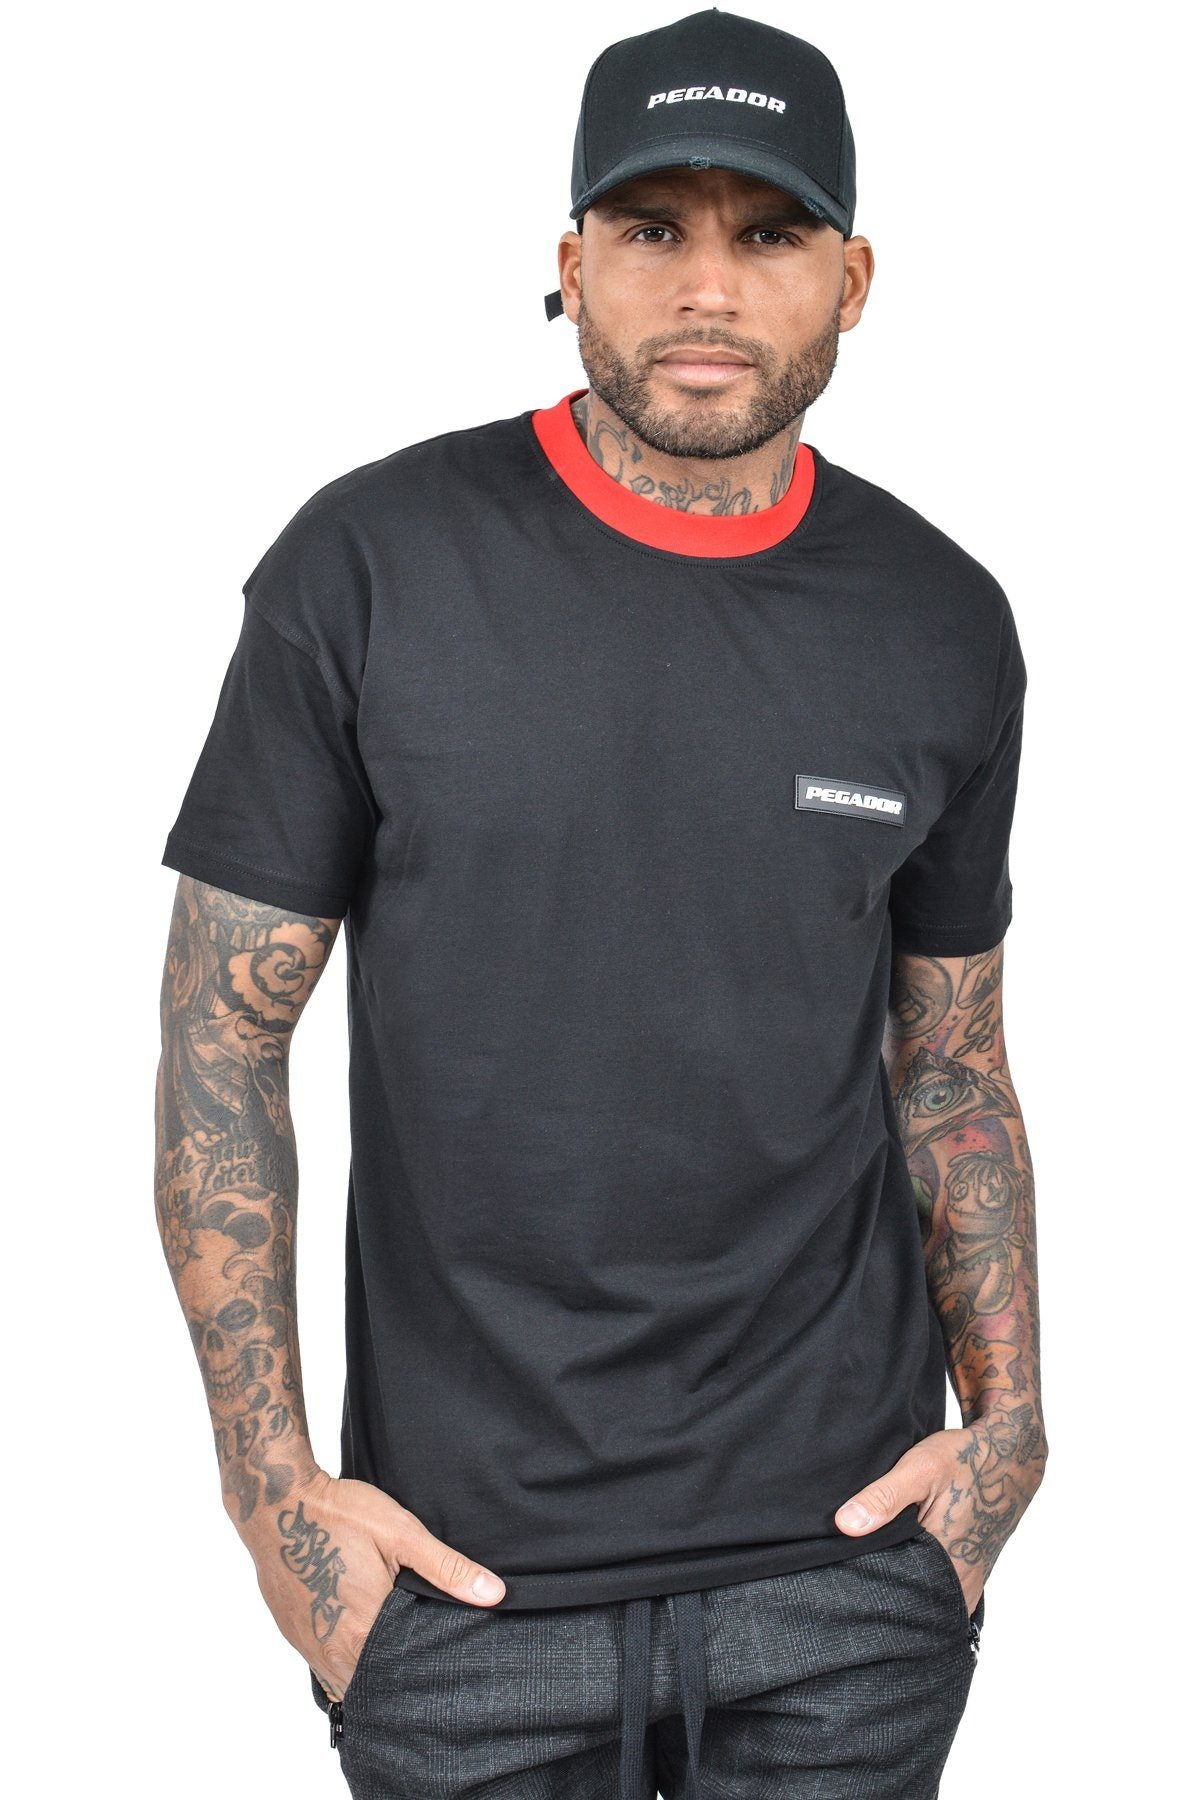 Caio T-Shirt Black - PEGADOR - Dominate the Hype